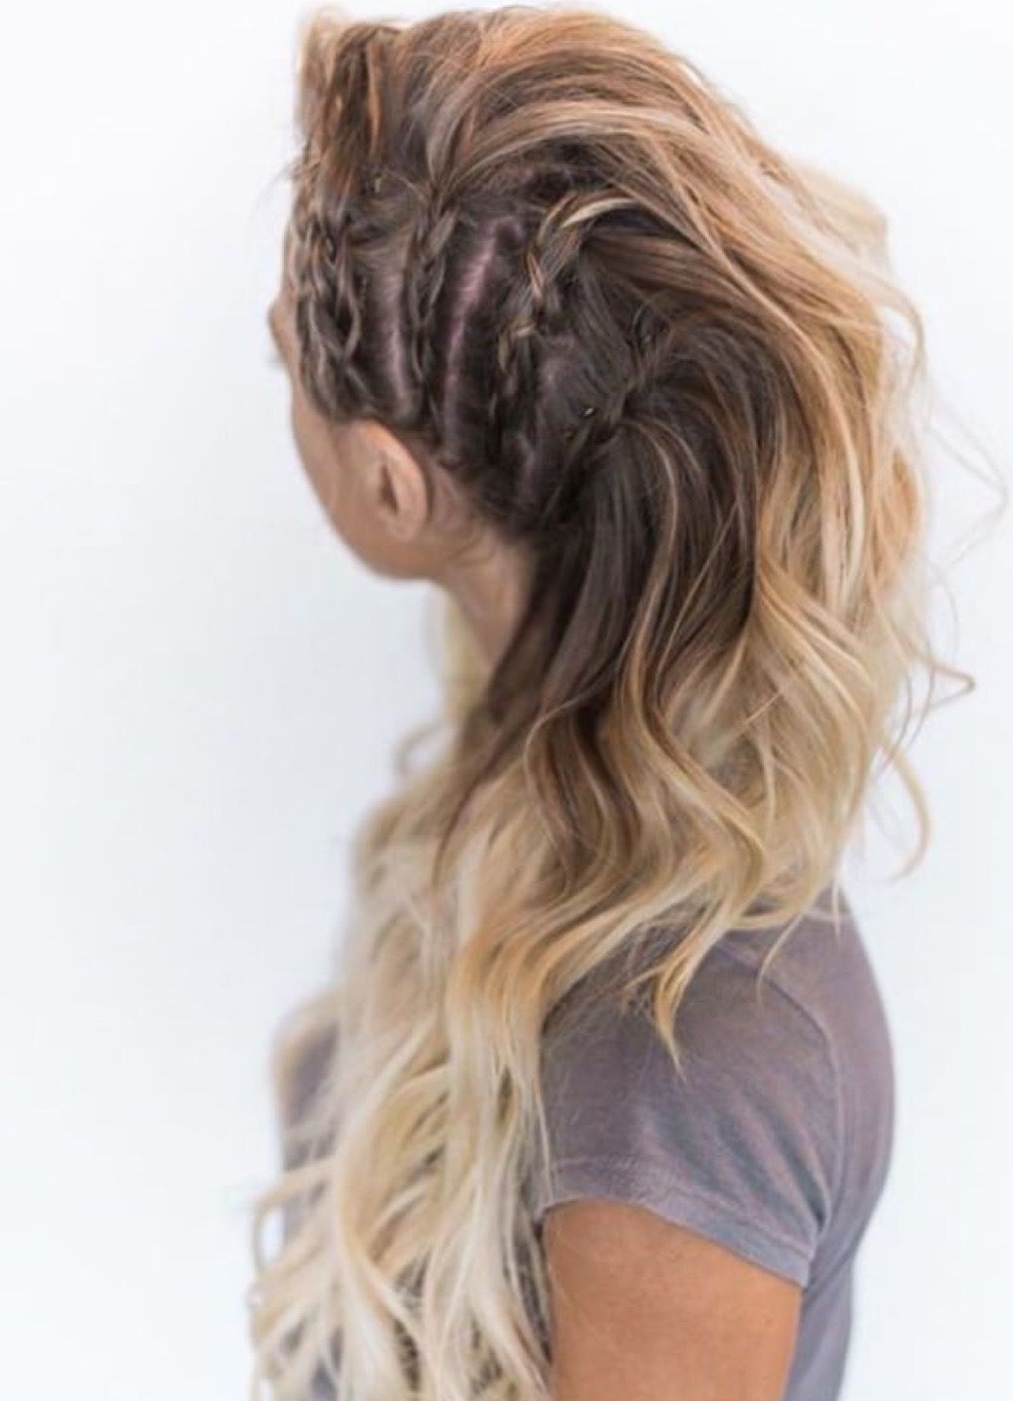 Avante Garde Inspired Side Braid Faux Mohawk With Curls All Falling Throughout Most Popular Brunette Macrame Braid Hairstyles (Gallery 8 of 20)